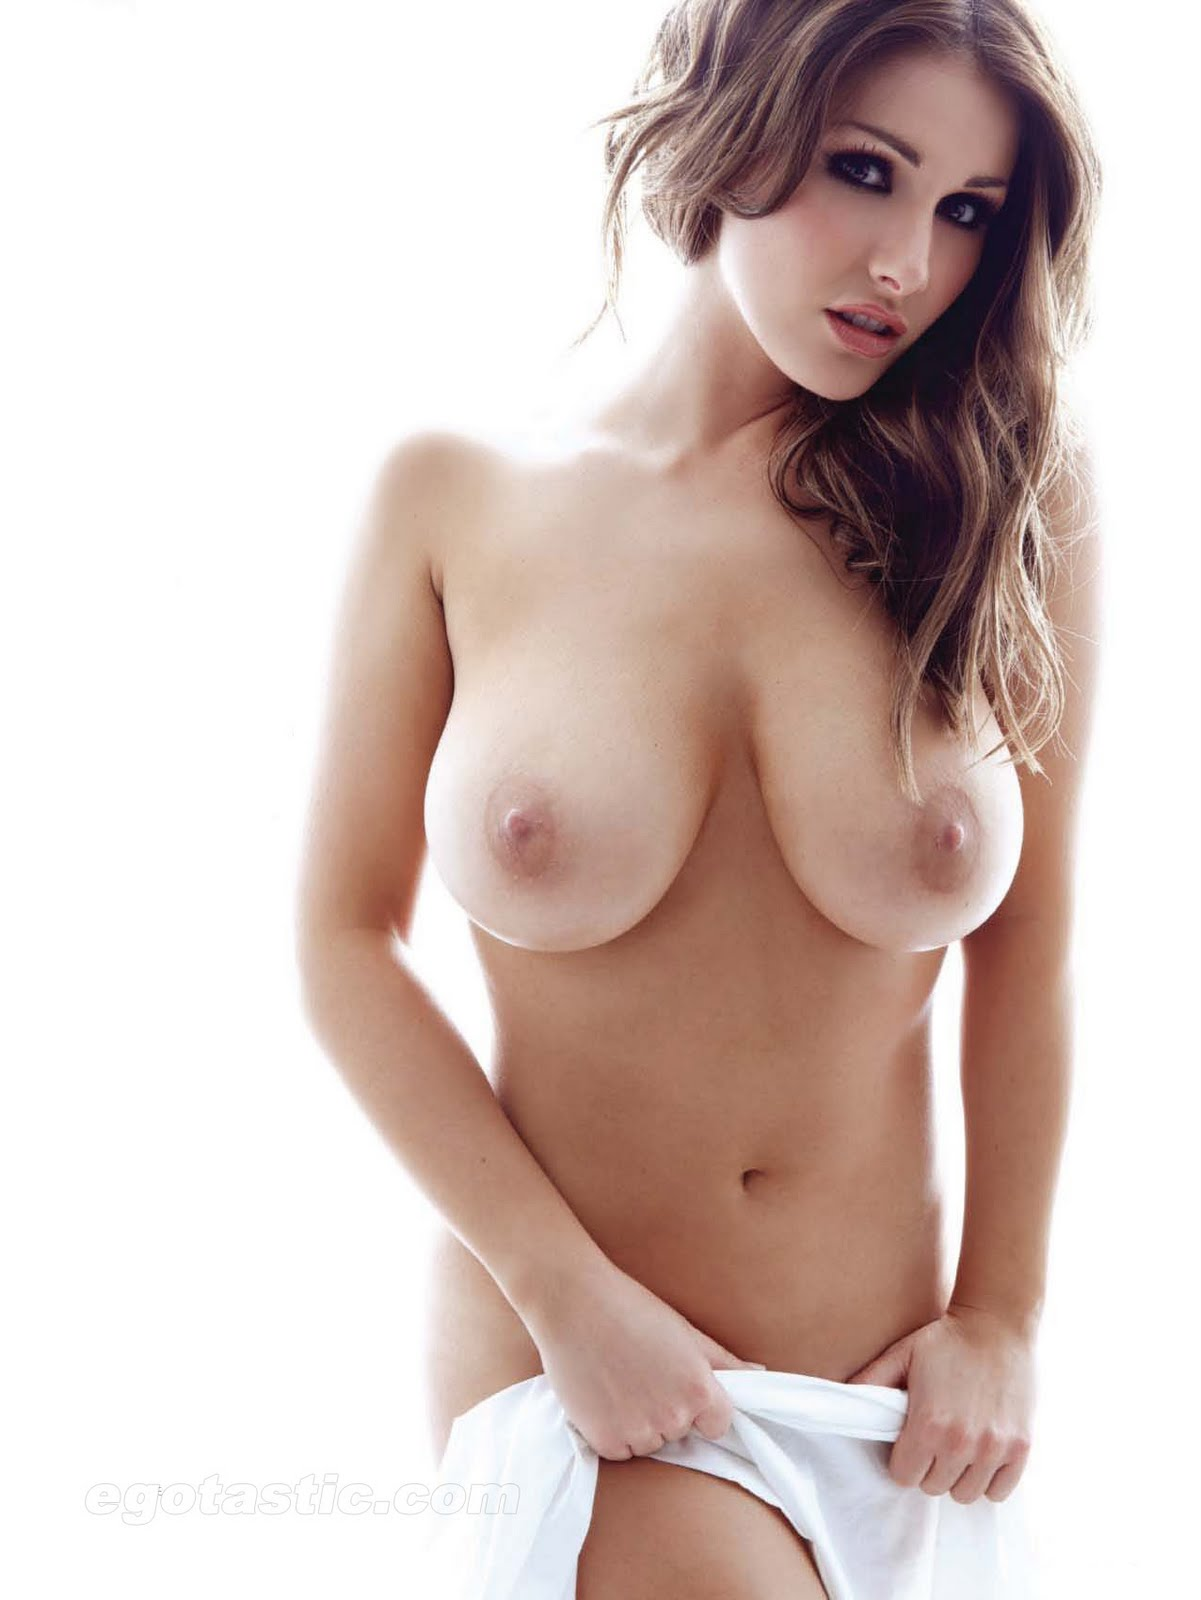 Topless lucy pinder nude